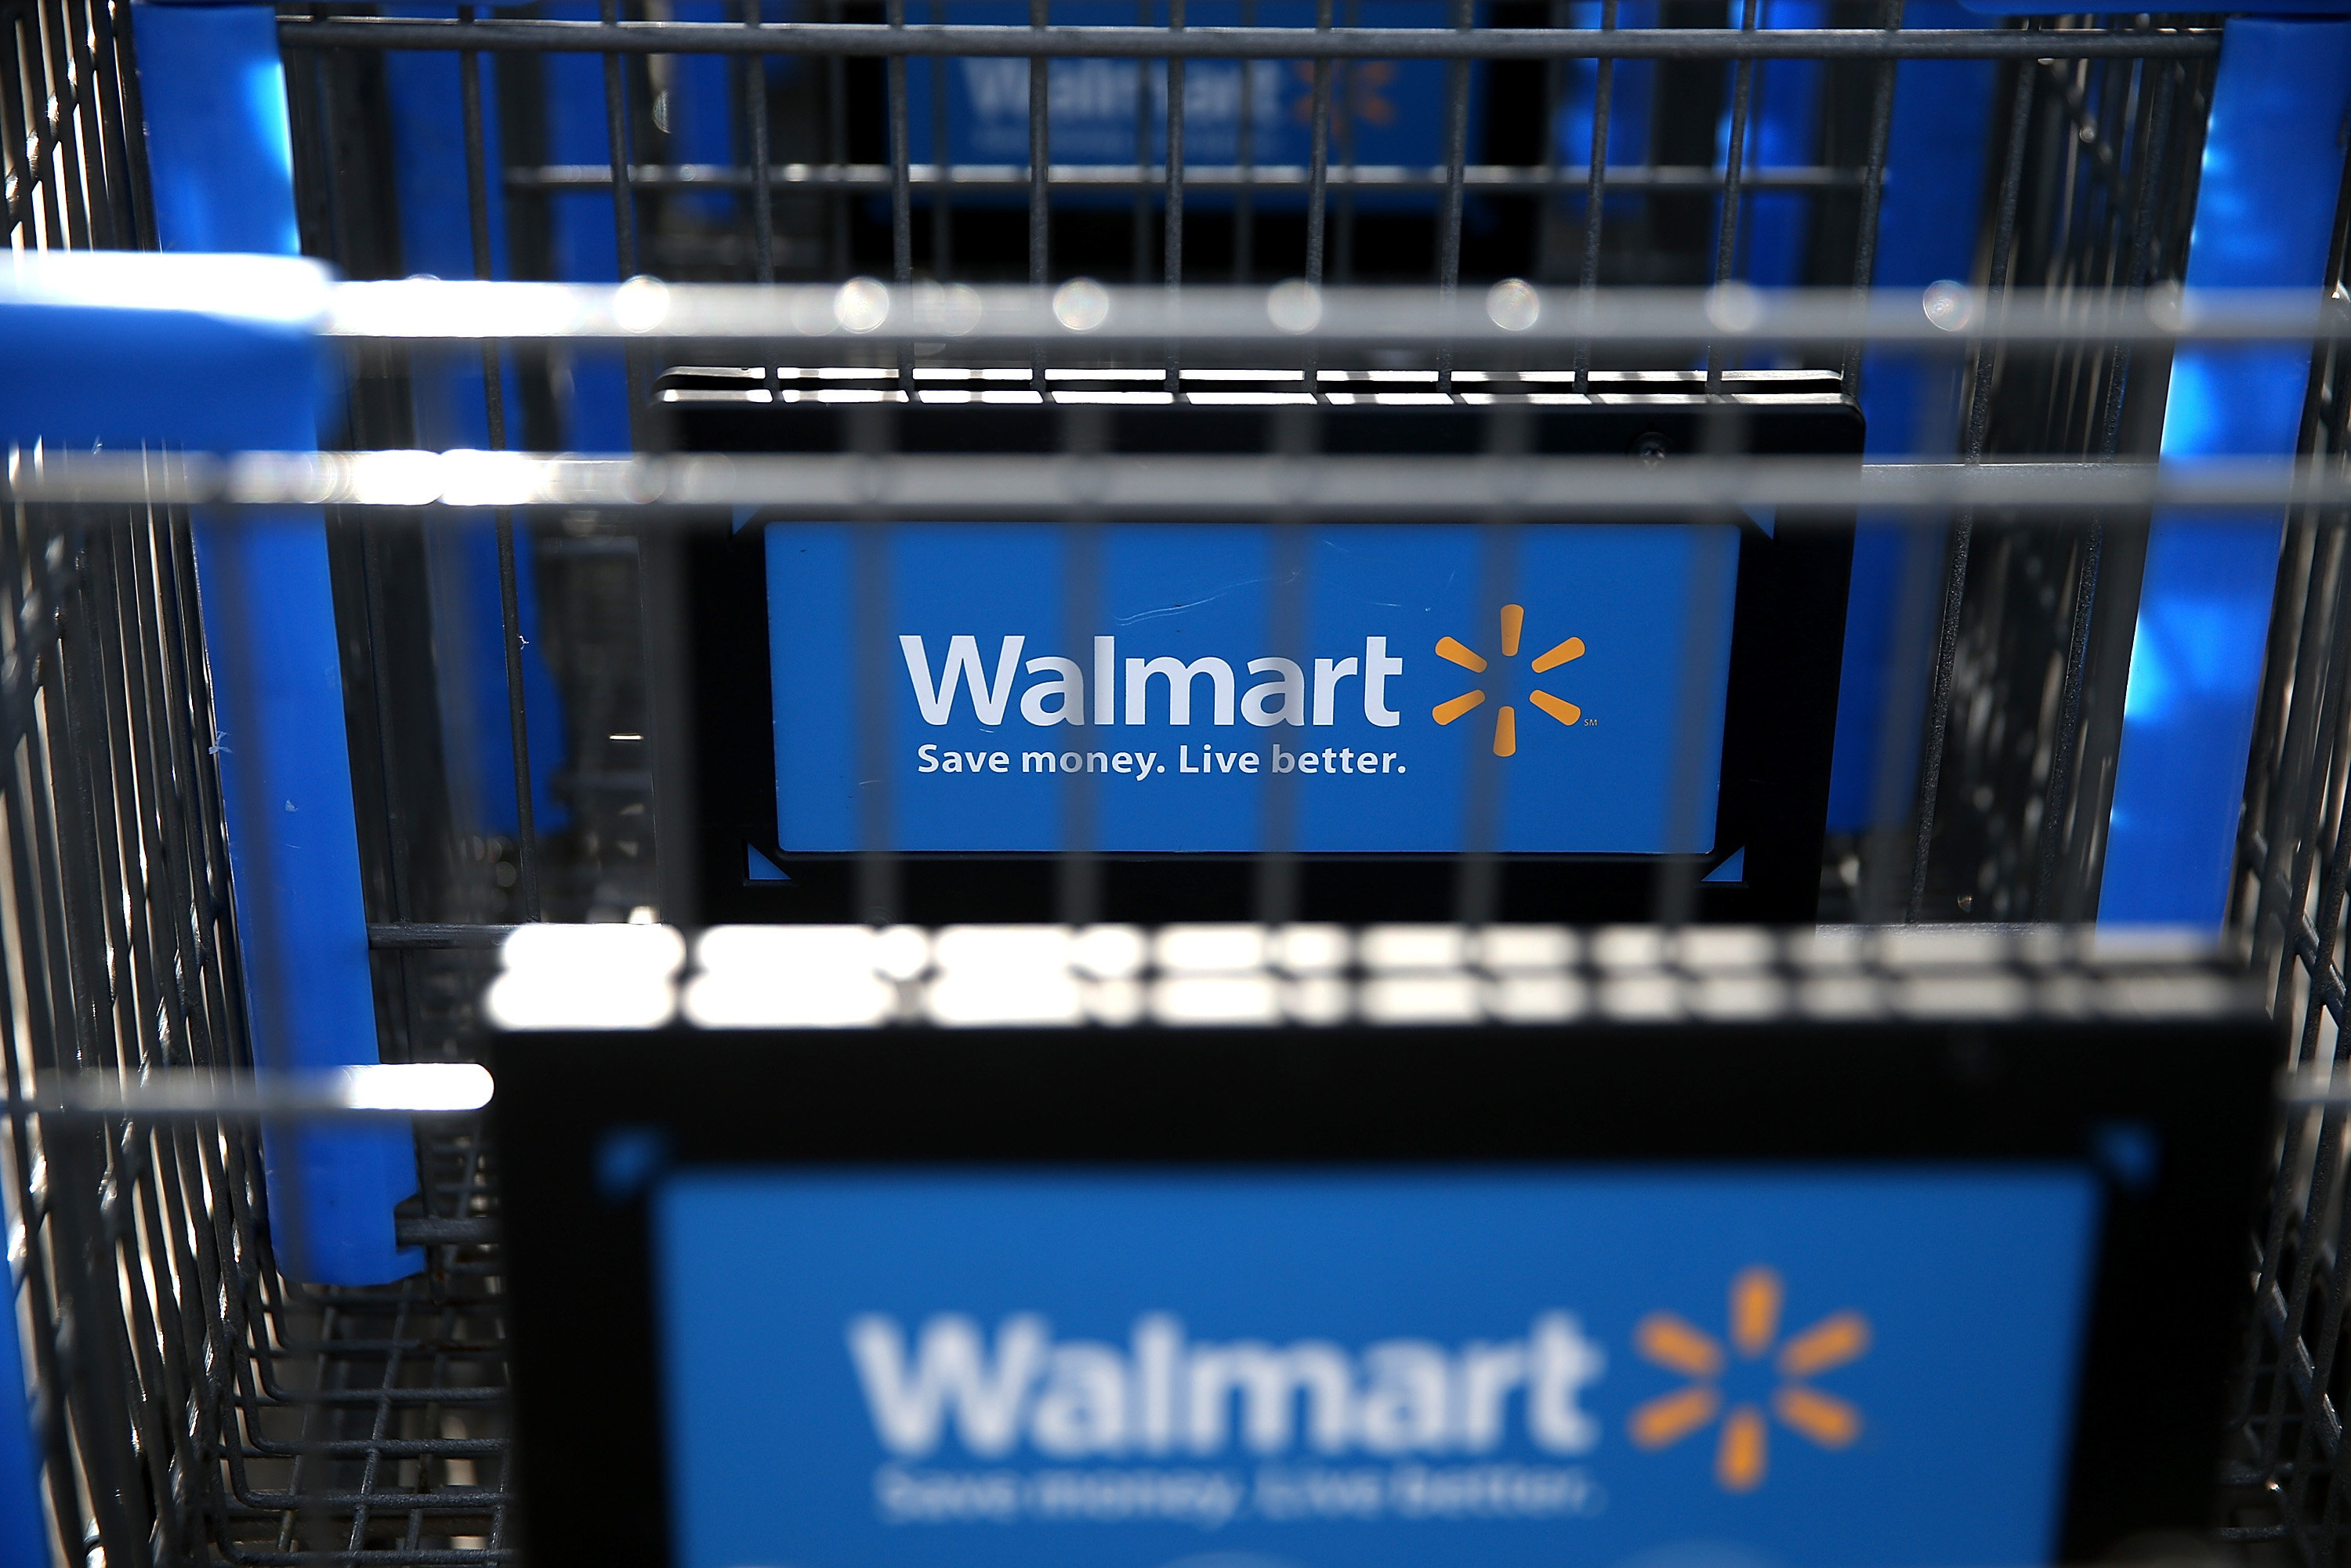 . Wal Mart E Commerce Gains on Amazon  Staples   US News